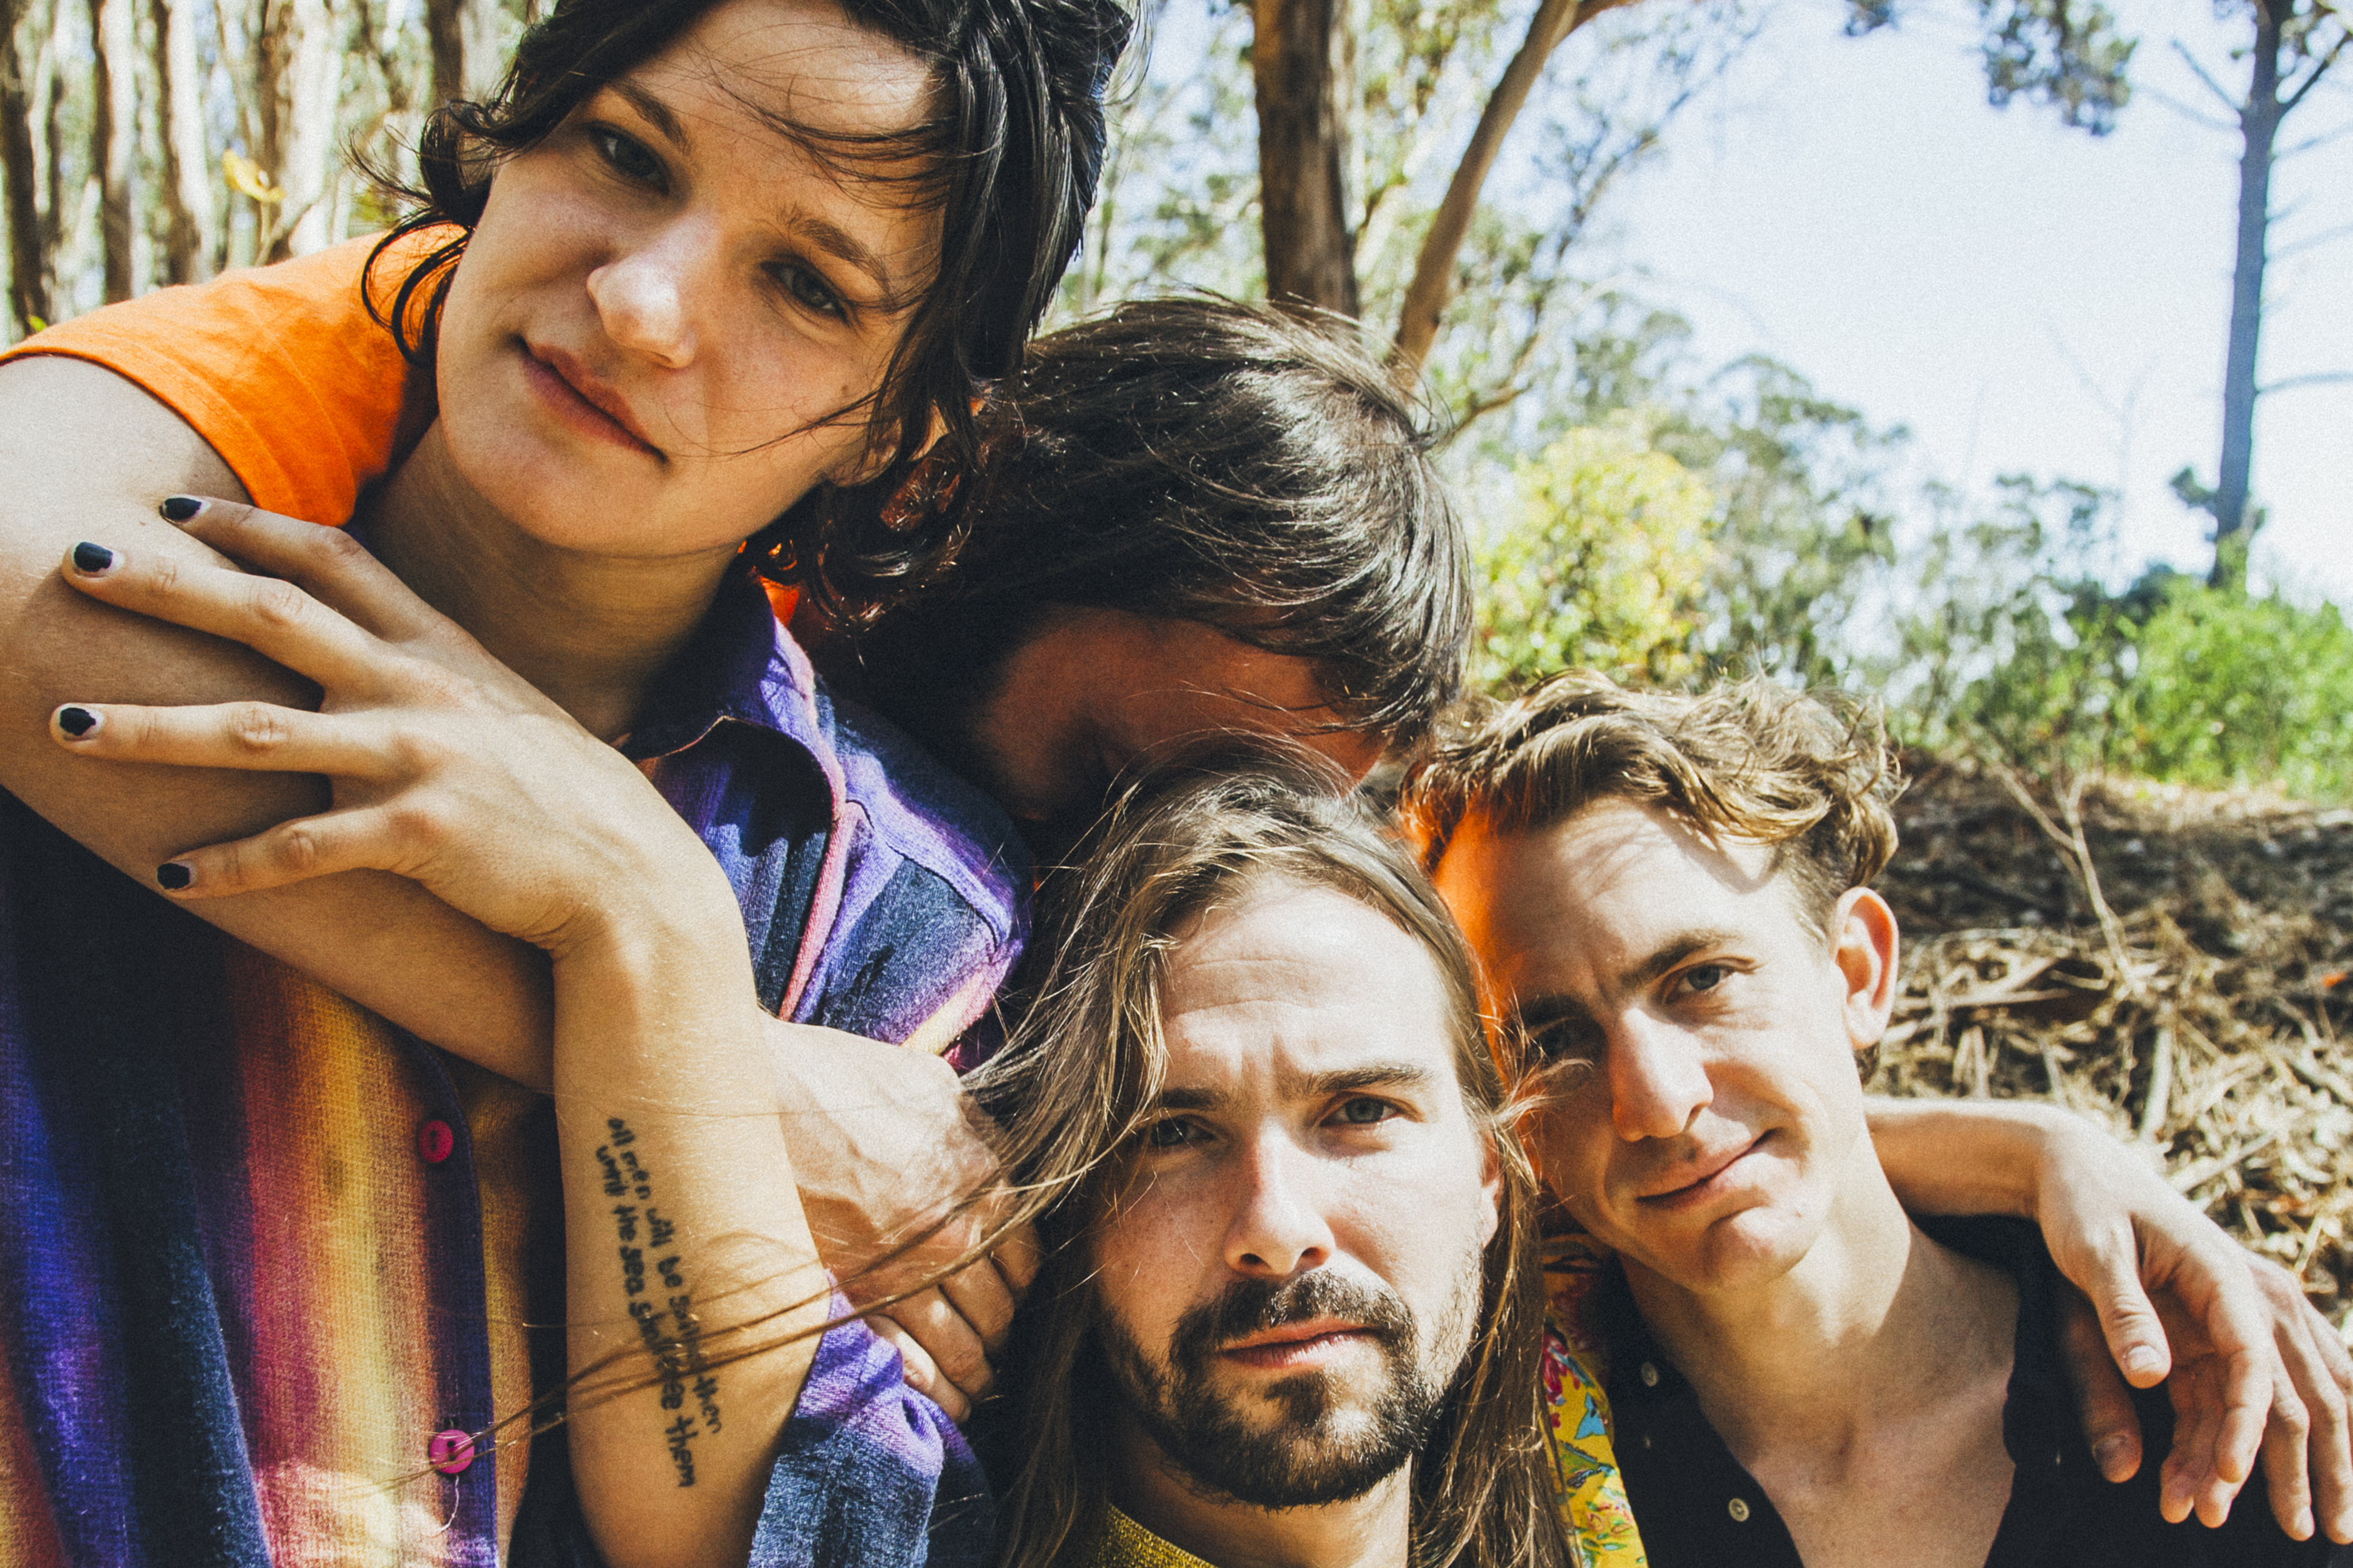 Big Thief's 'U.F.O.F.' And 'Two Hands' Are Two Sides Of The Same Coin